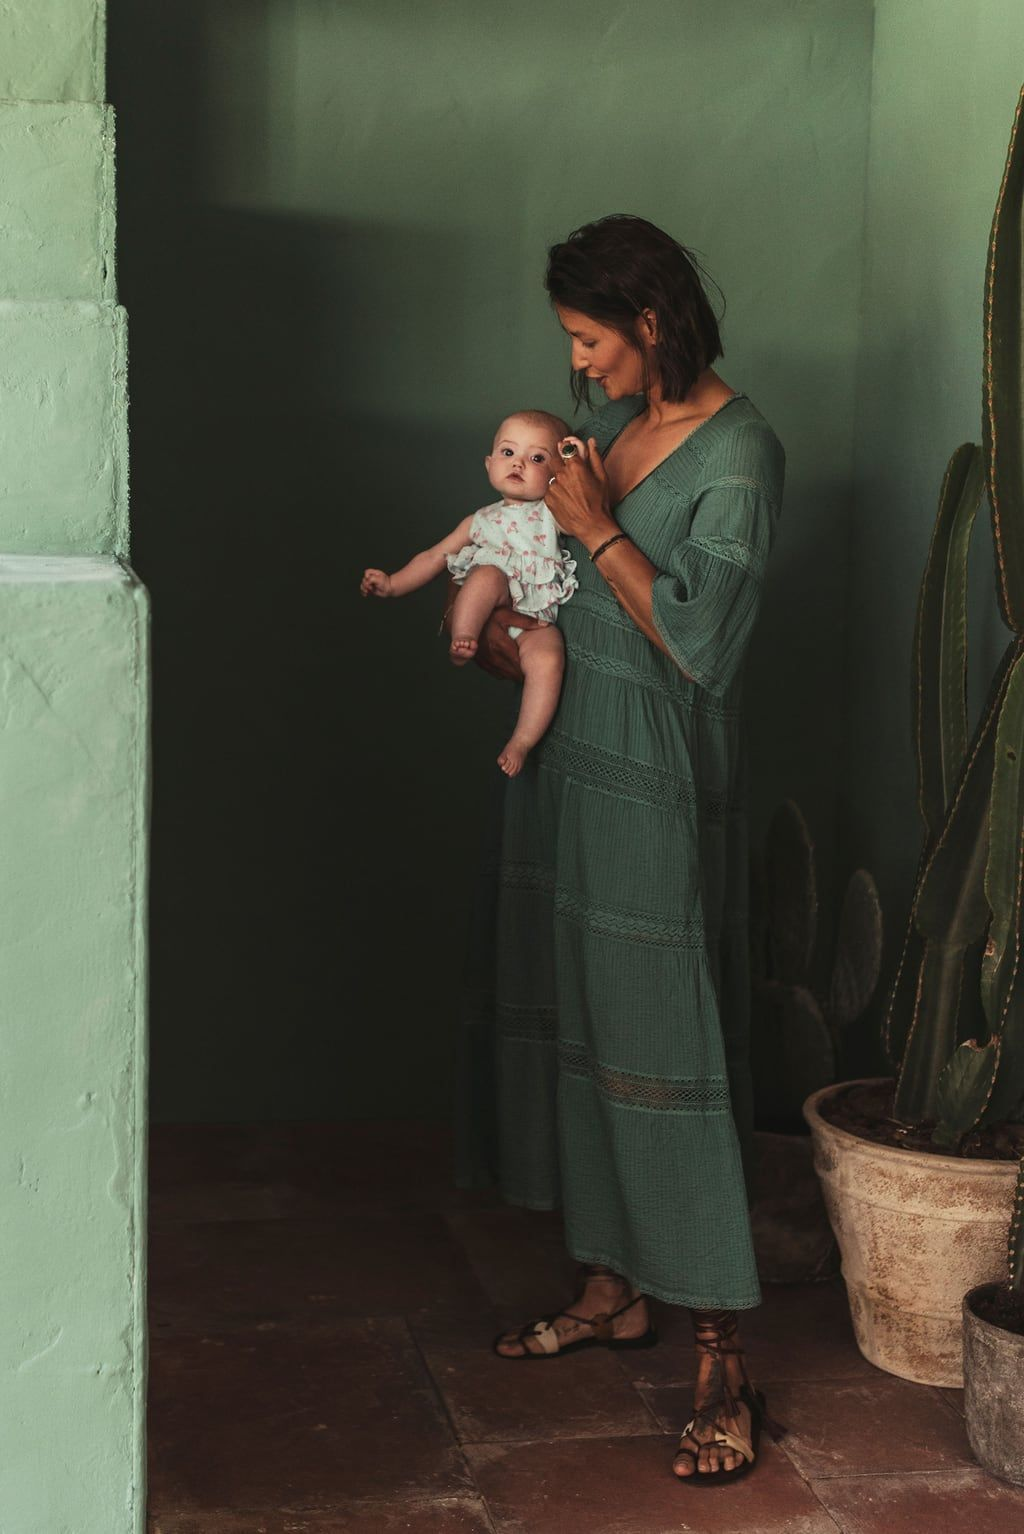 zara campaign in 2020 | Style, Mom and baby, Kids